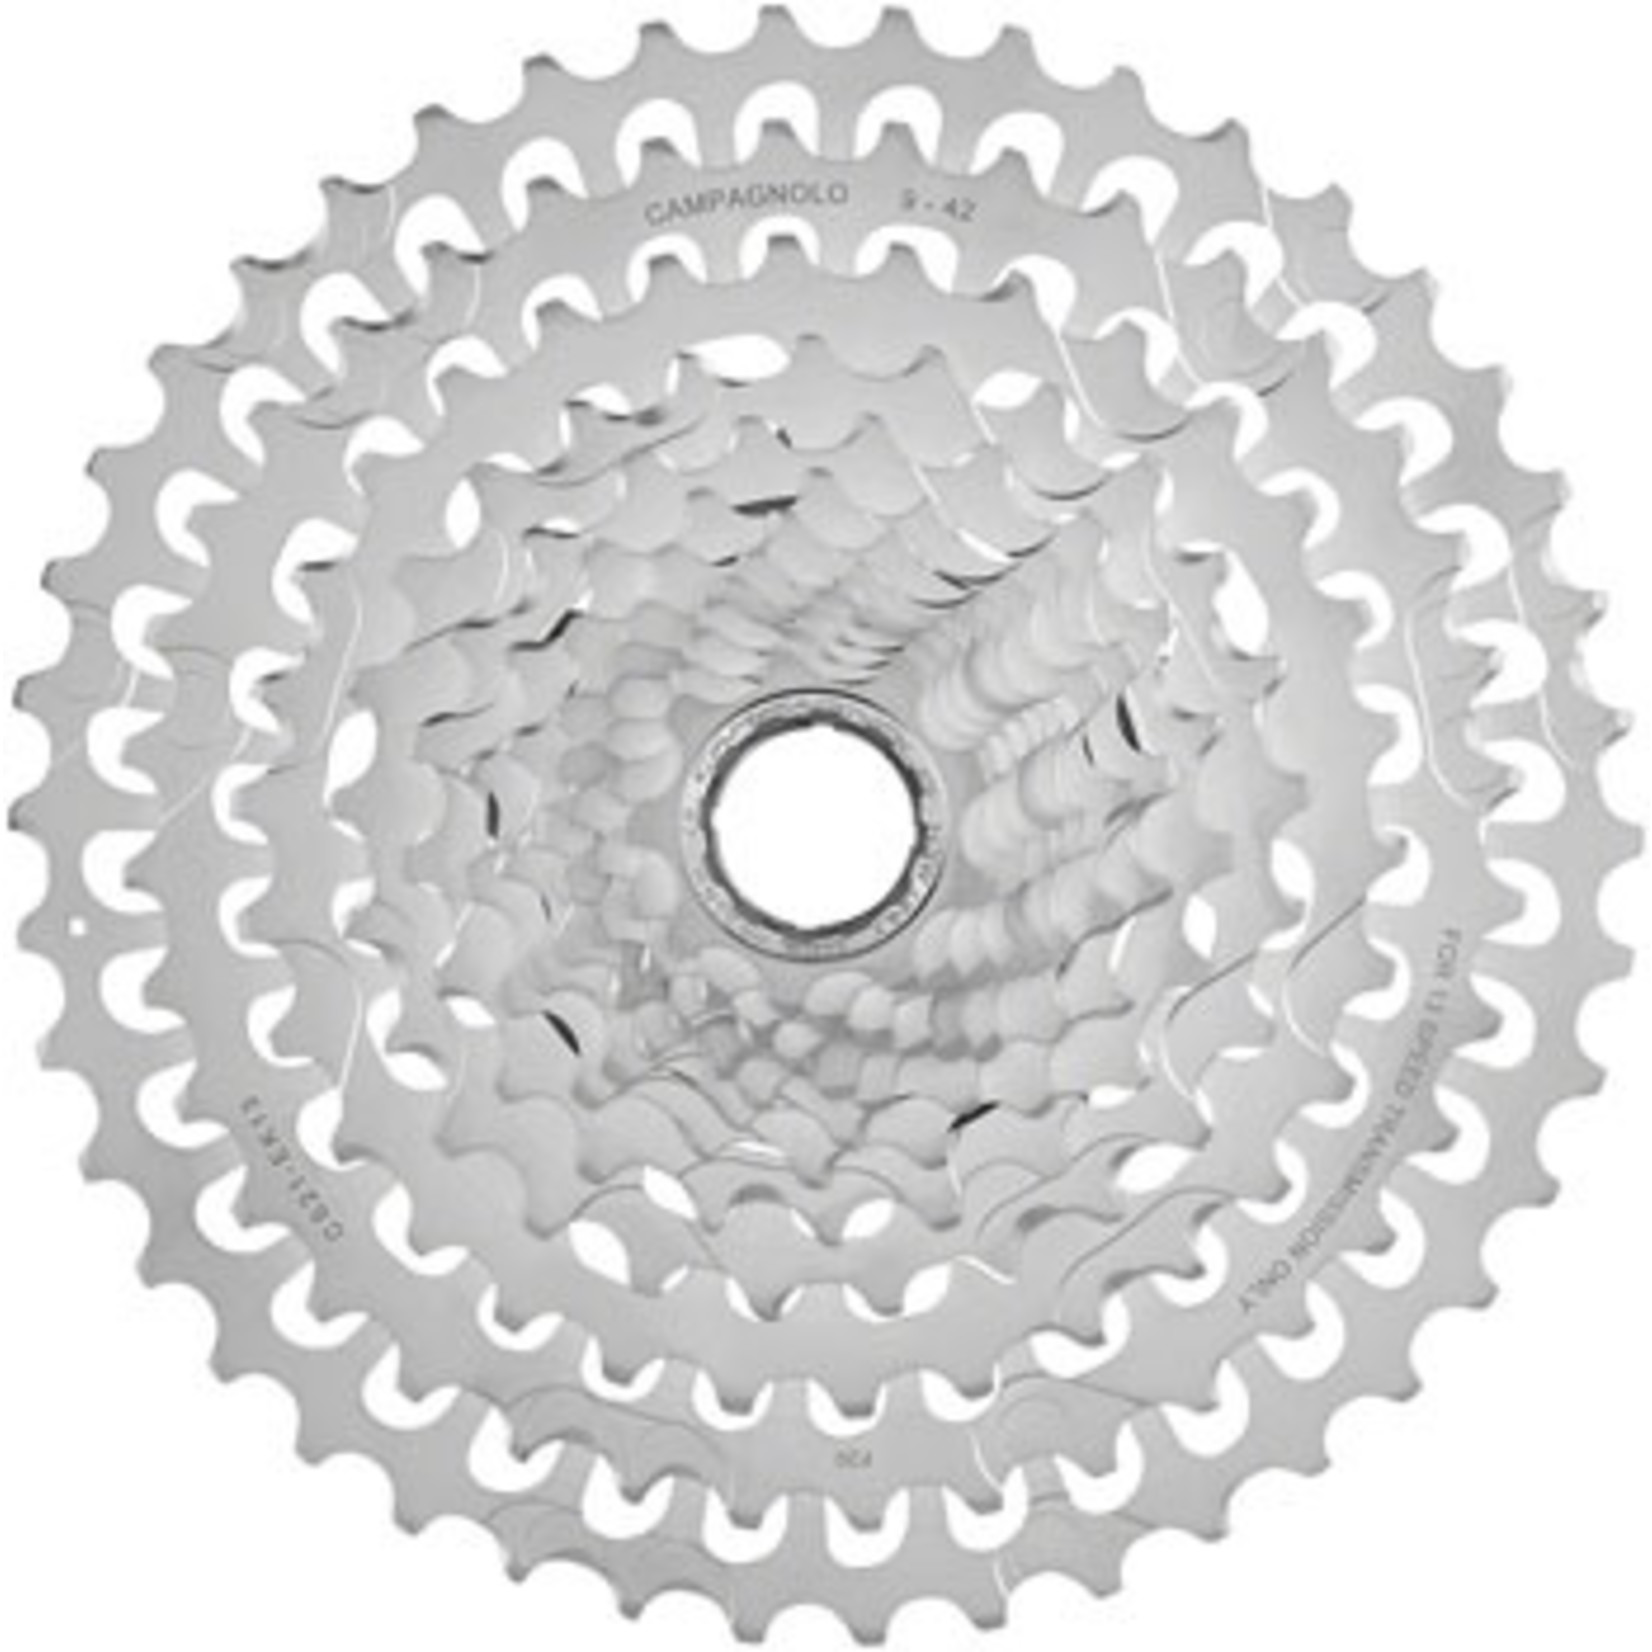 Campagnolo Campagnolo EKAR Cassette - 13-Speed, 9-42t, Silver, For N3W Driver Body